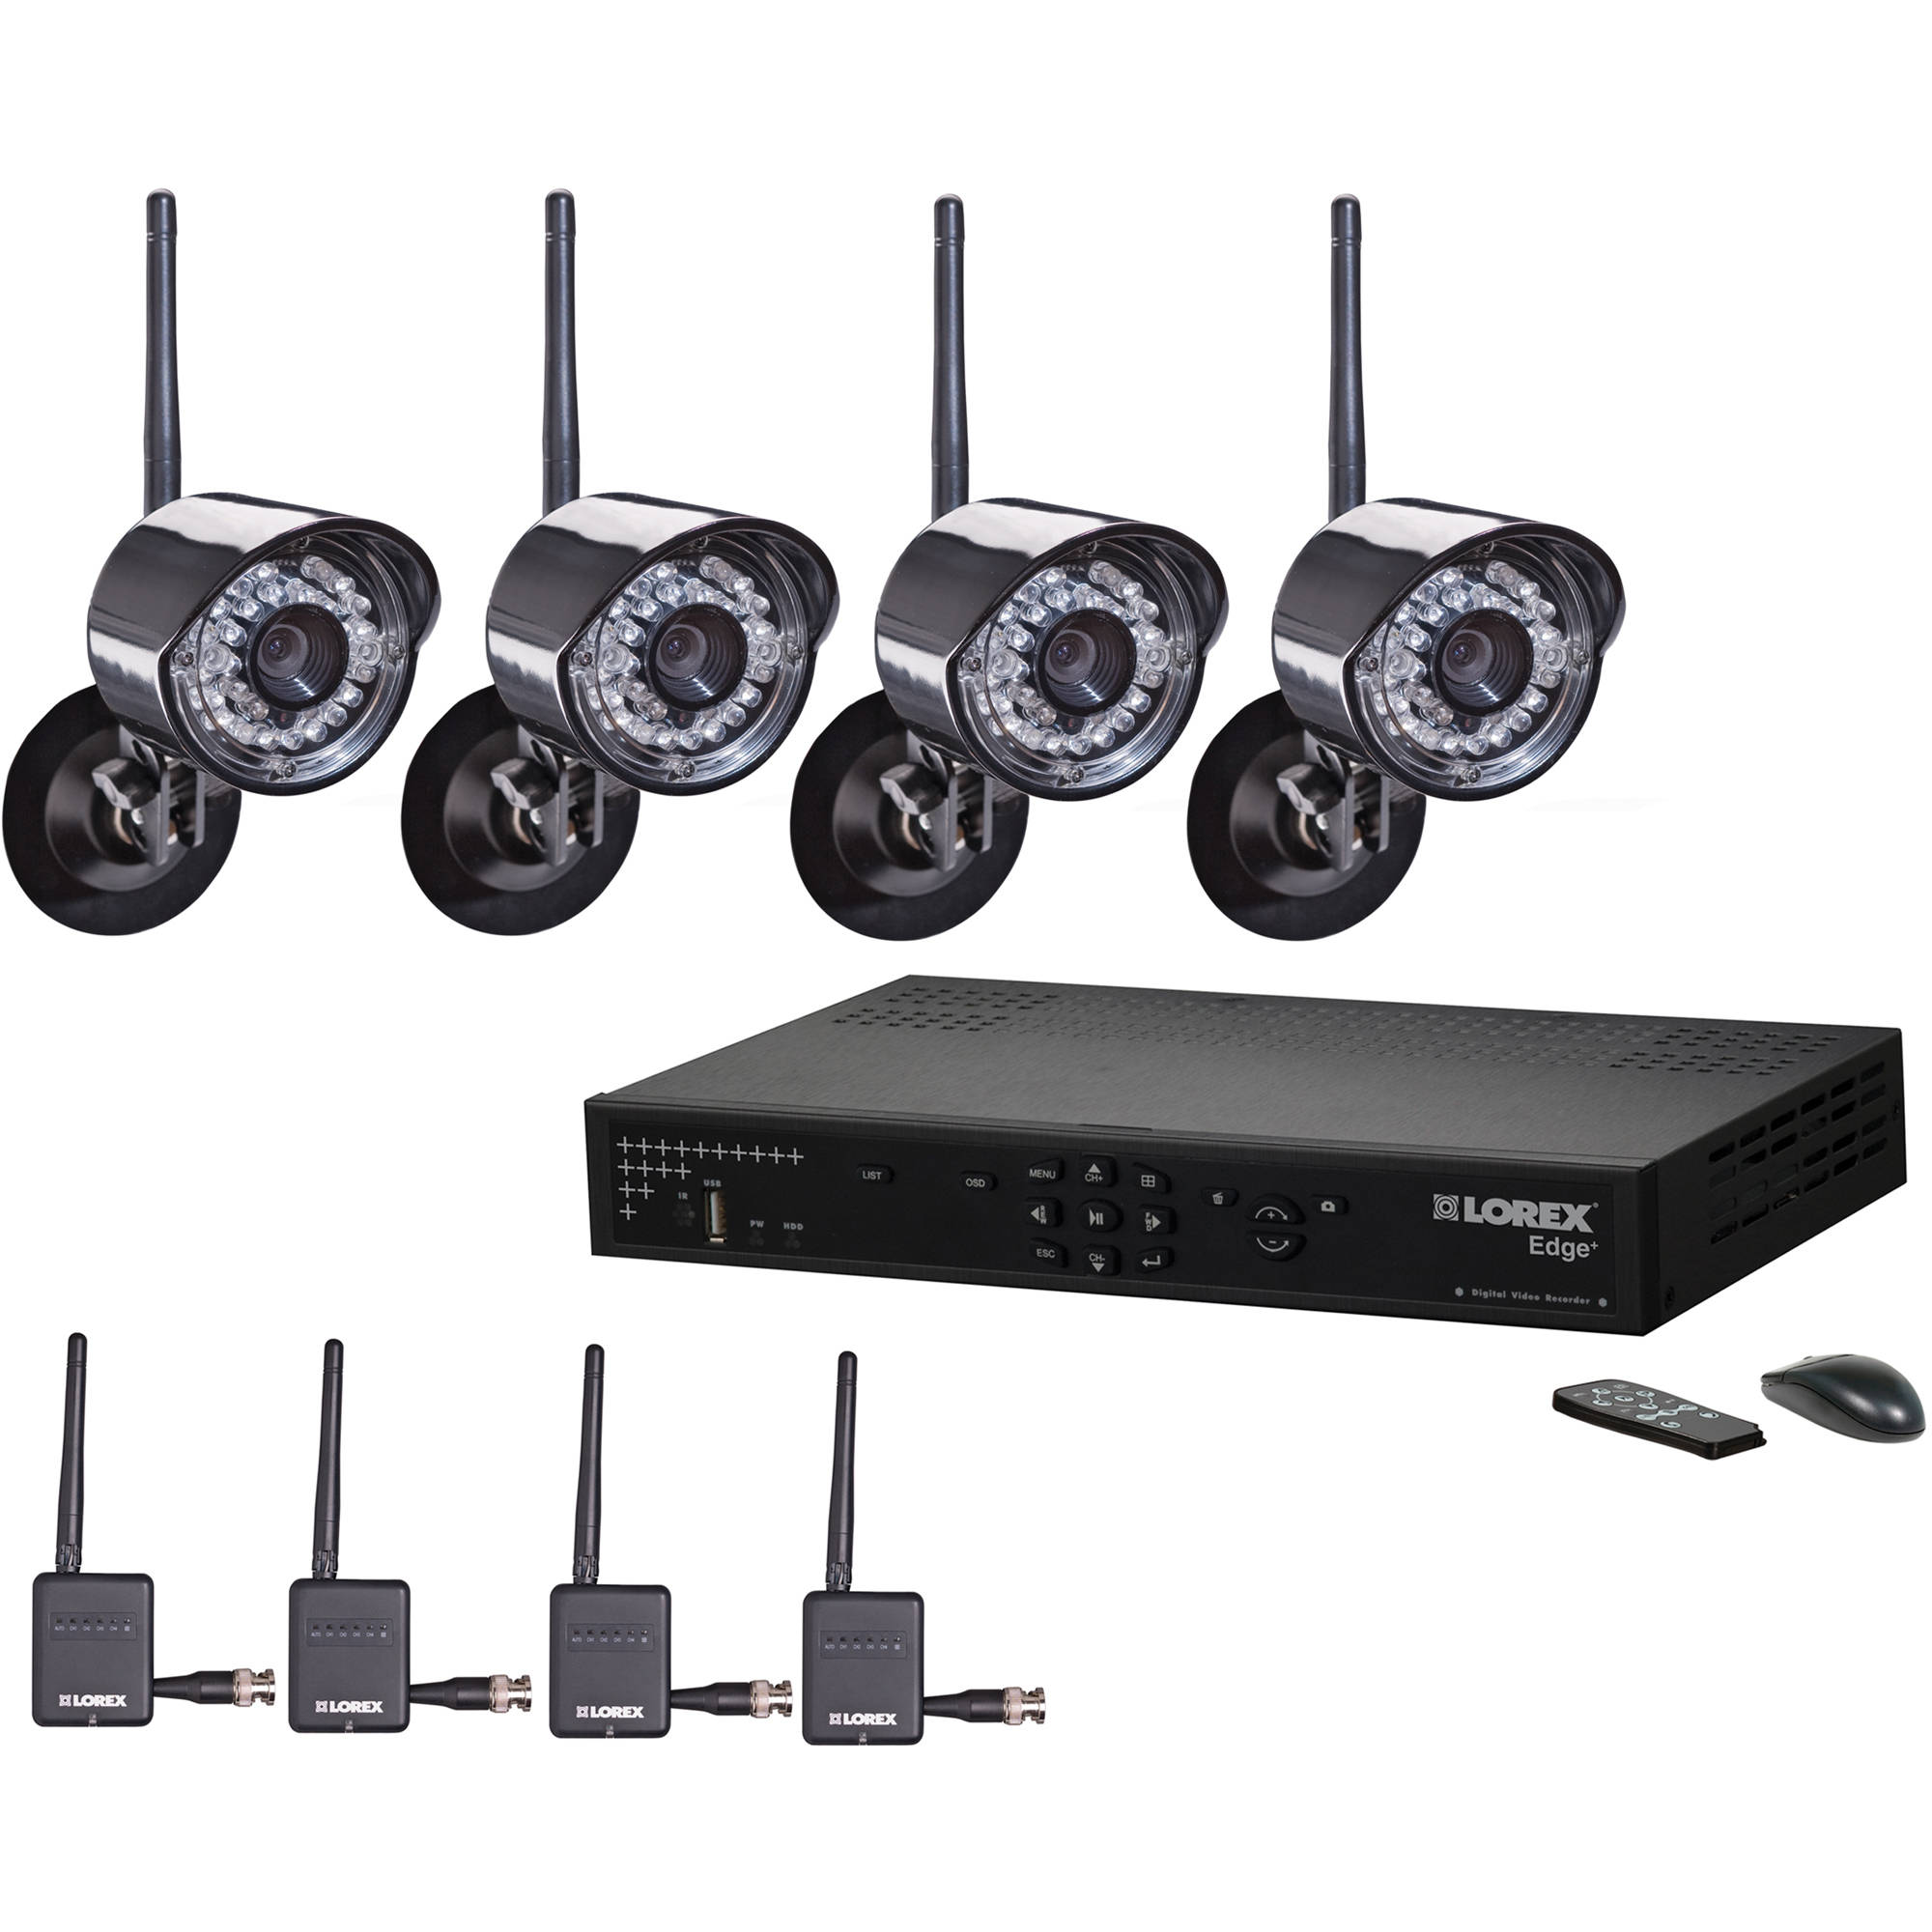 Lorex 8 Channel Edge + Wireless Security Camera LH328501C4W B&H: www.bhphotovideo.com/c/product/711628-REG/Lorex_LH328501C4W_8...